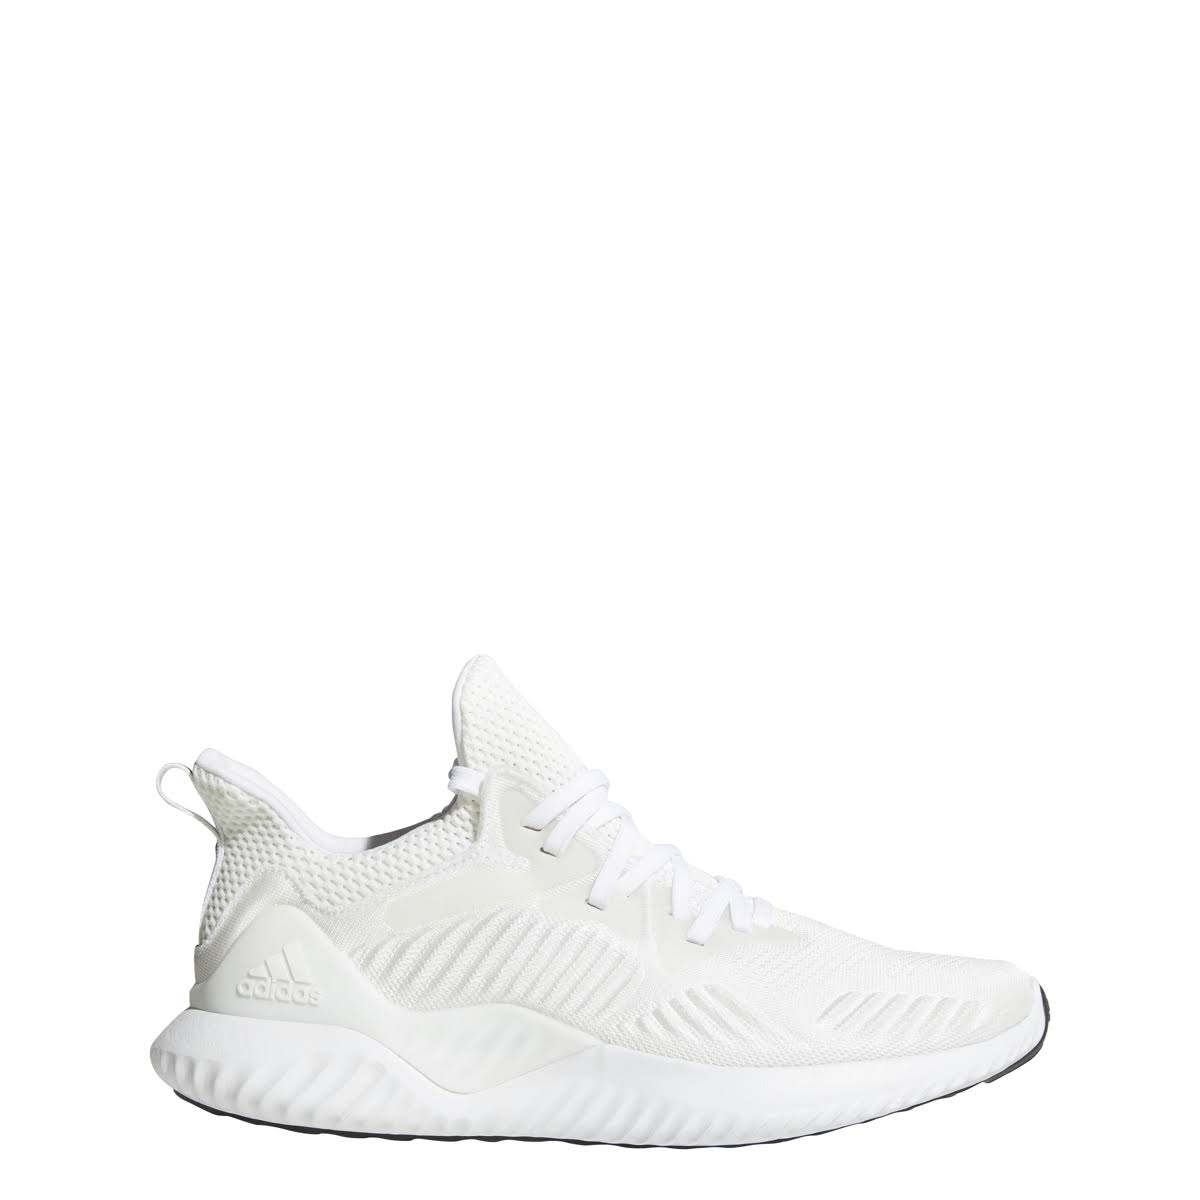 White Adidas Shoes Alphabounce Beyond Mujeres Corriendo Cloud 5 5 IfzR4xSfqw